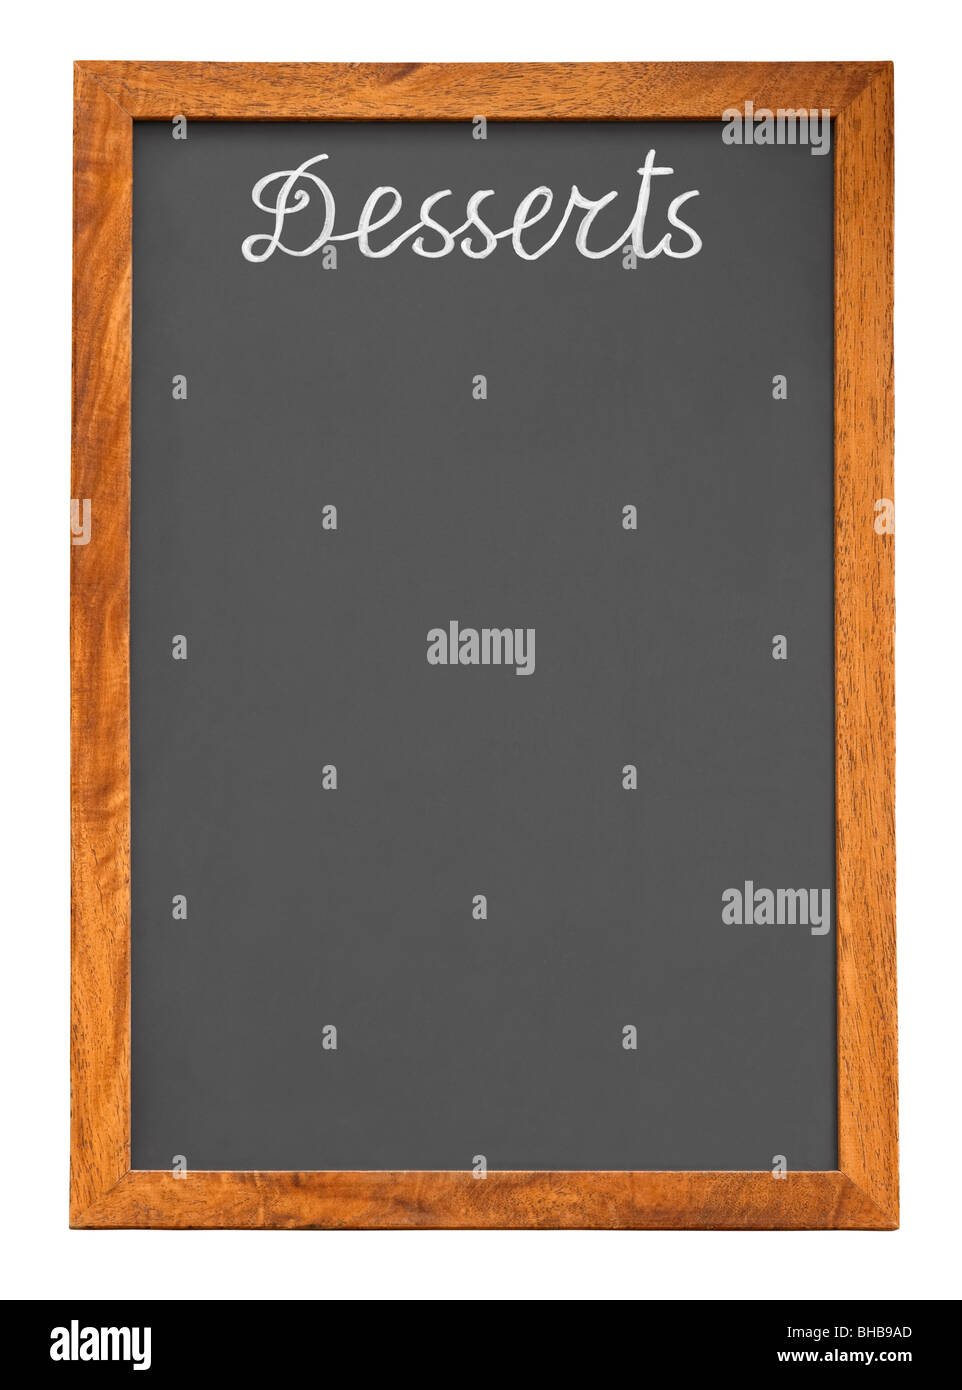 Menu chalkboard for desserts isolated on white background Stock Photo